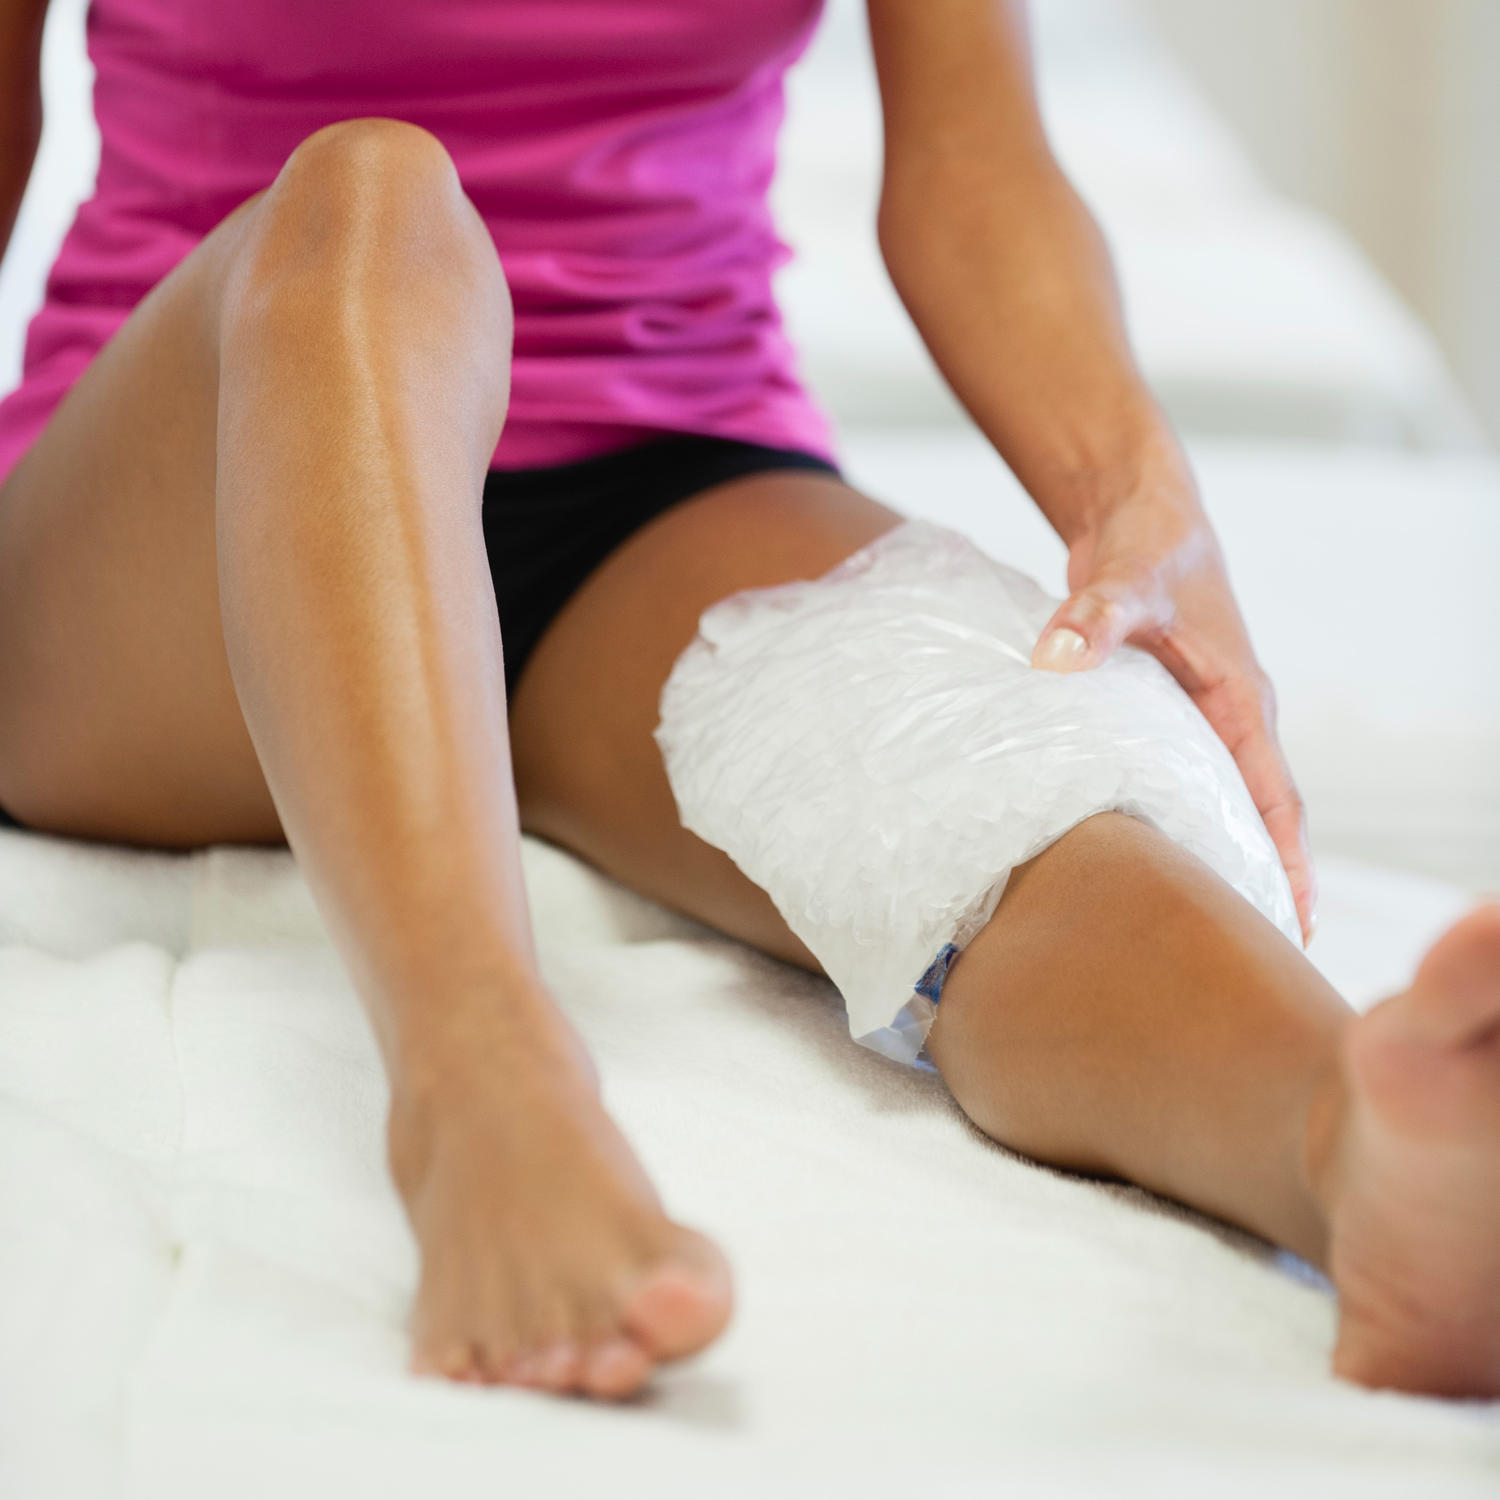 Sports Injuries: Does Ice Really Help A Muscle Strain Heal